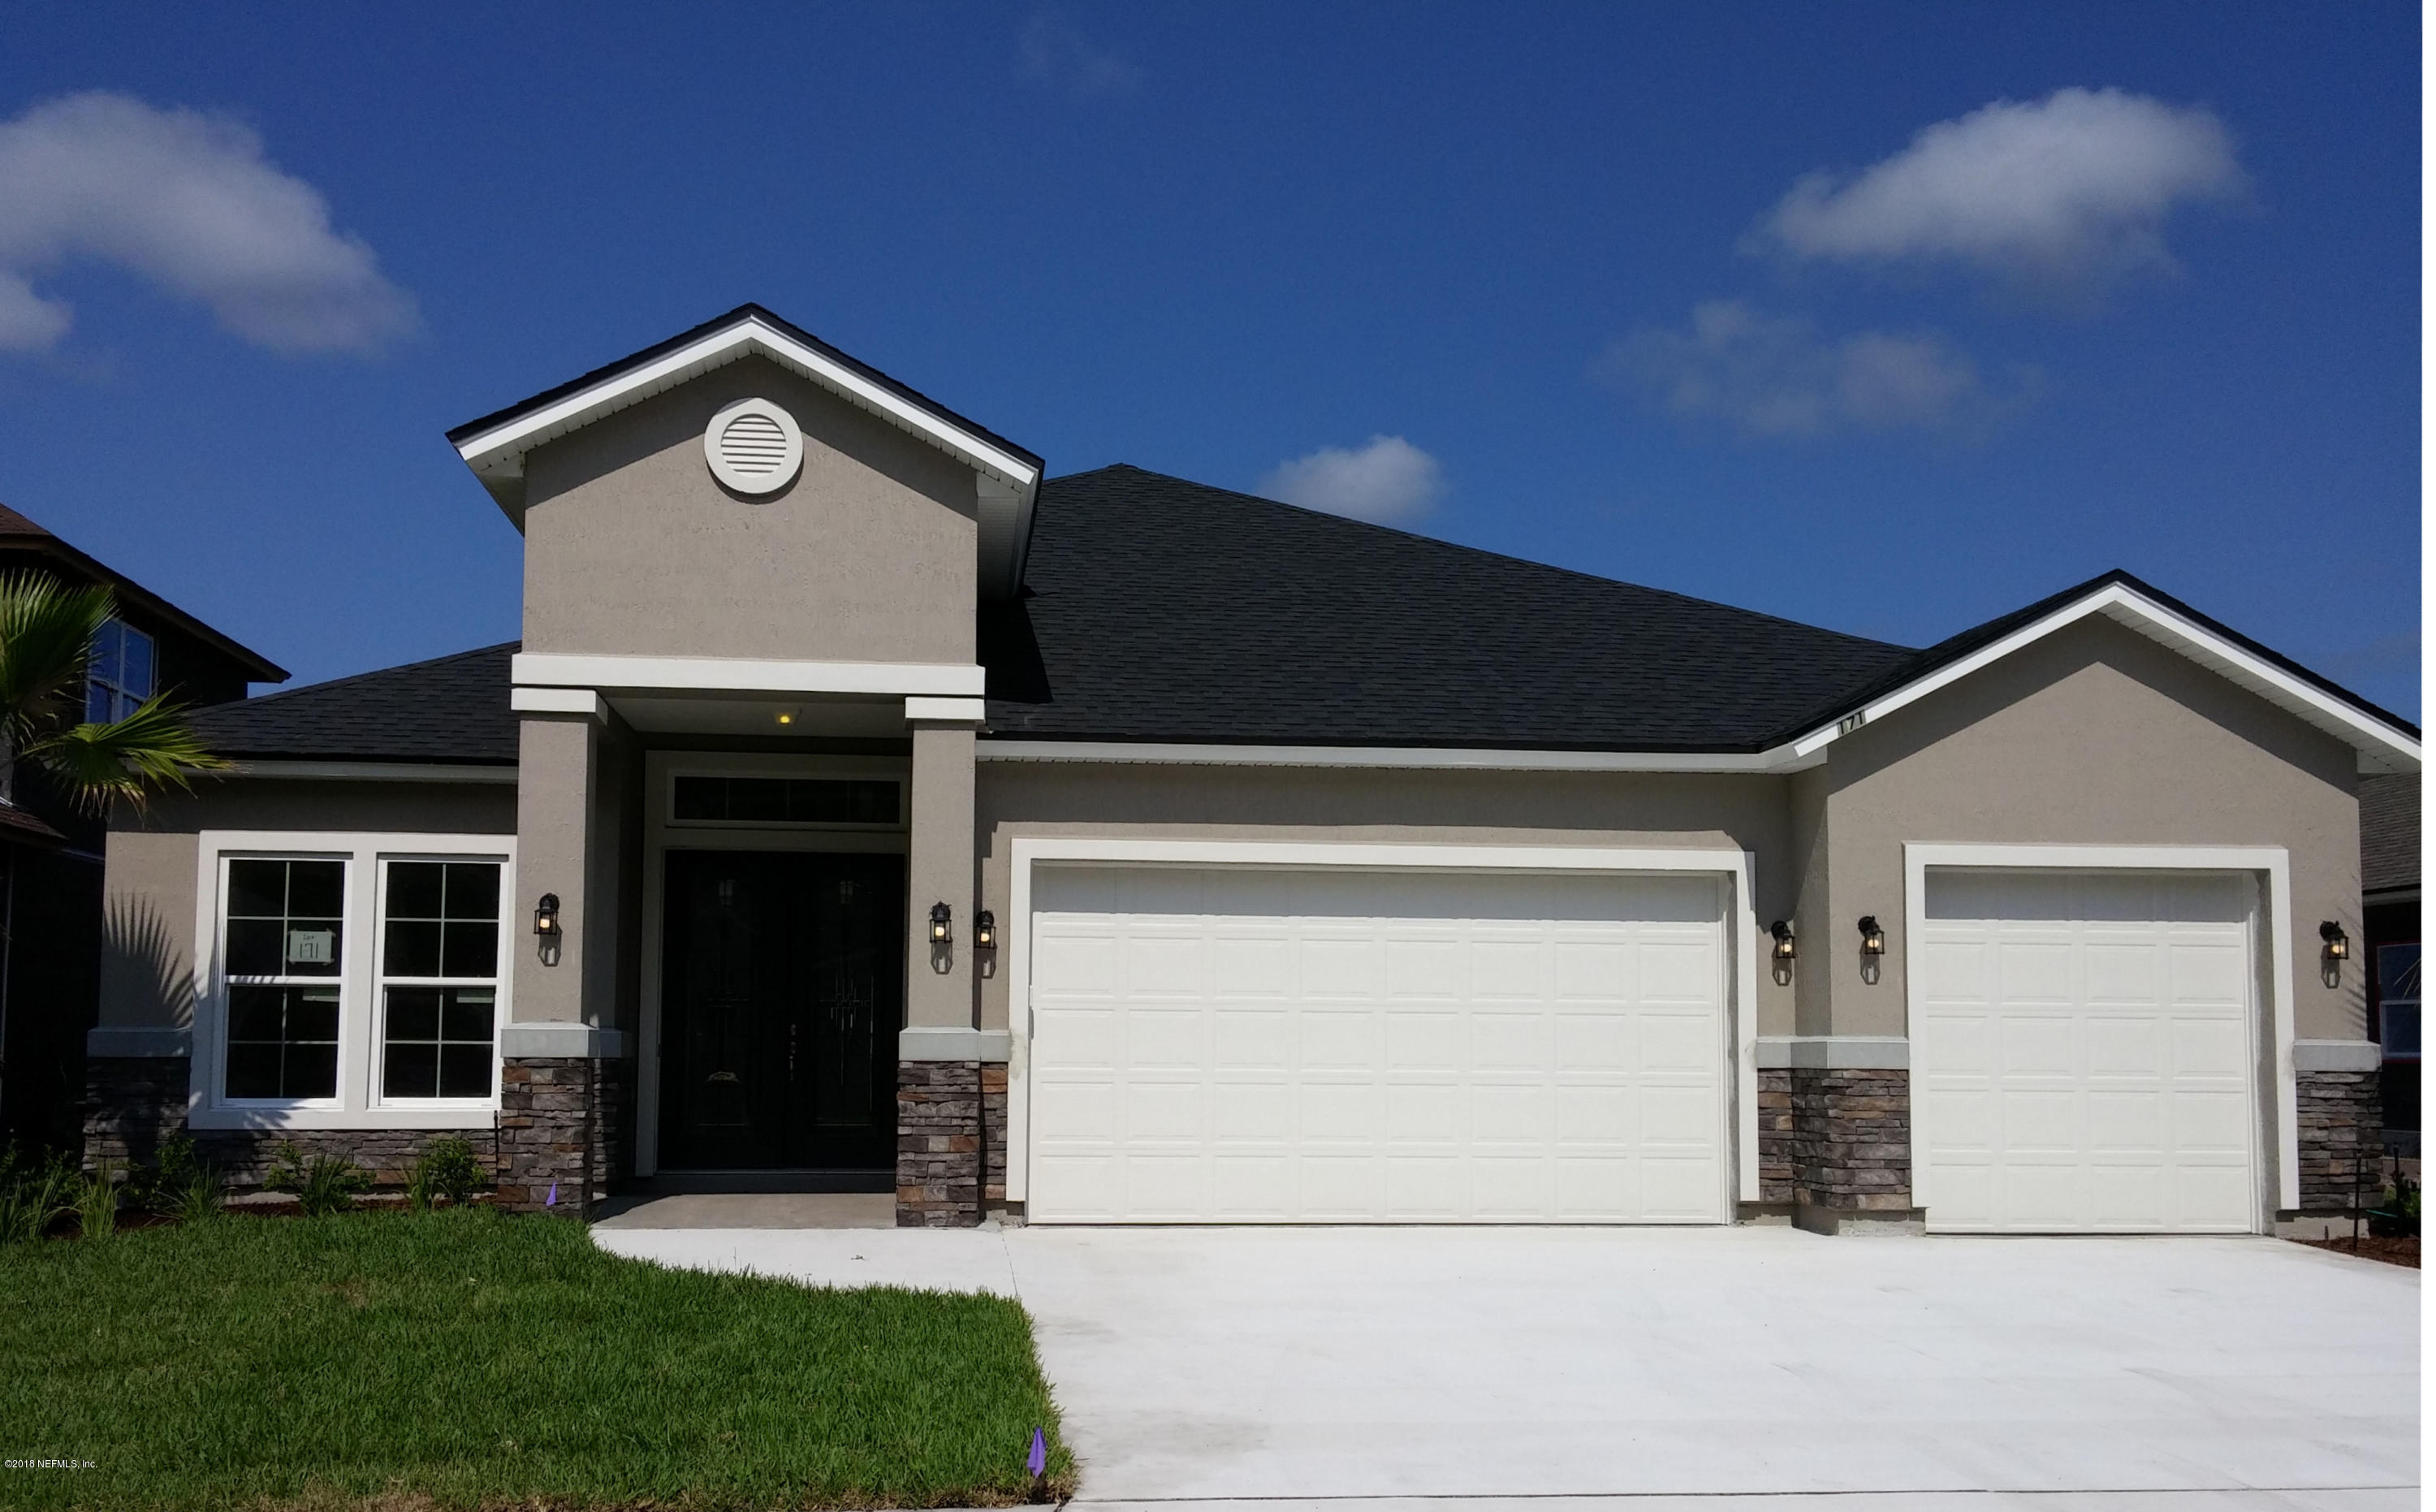 179 GREENVIEW, ST AUGUSTINE, FLORIDA 32092, 3 Bedrooms Bedrooms, ,3 BathroomsBathrooms,Residential - single family,For sale,GREENVIEW,932248